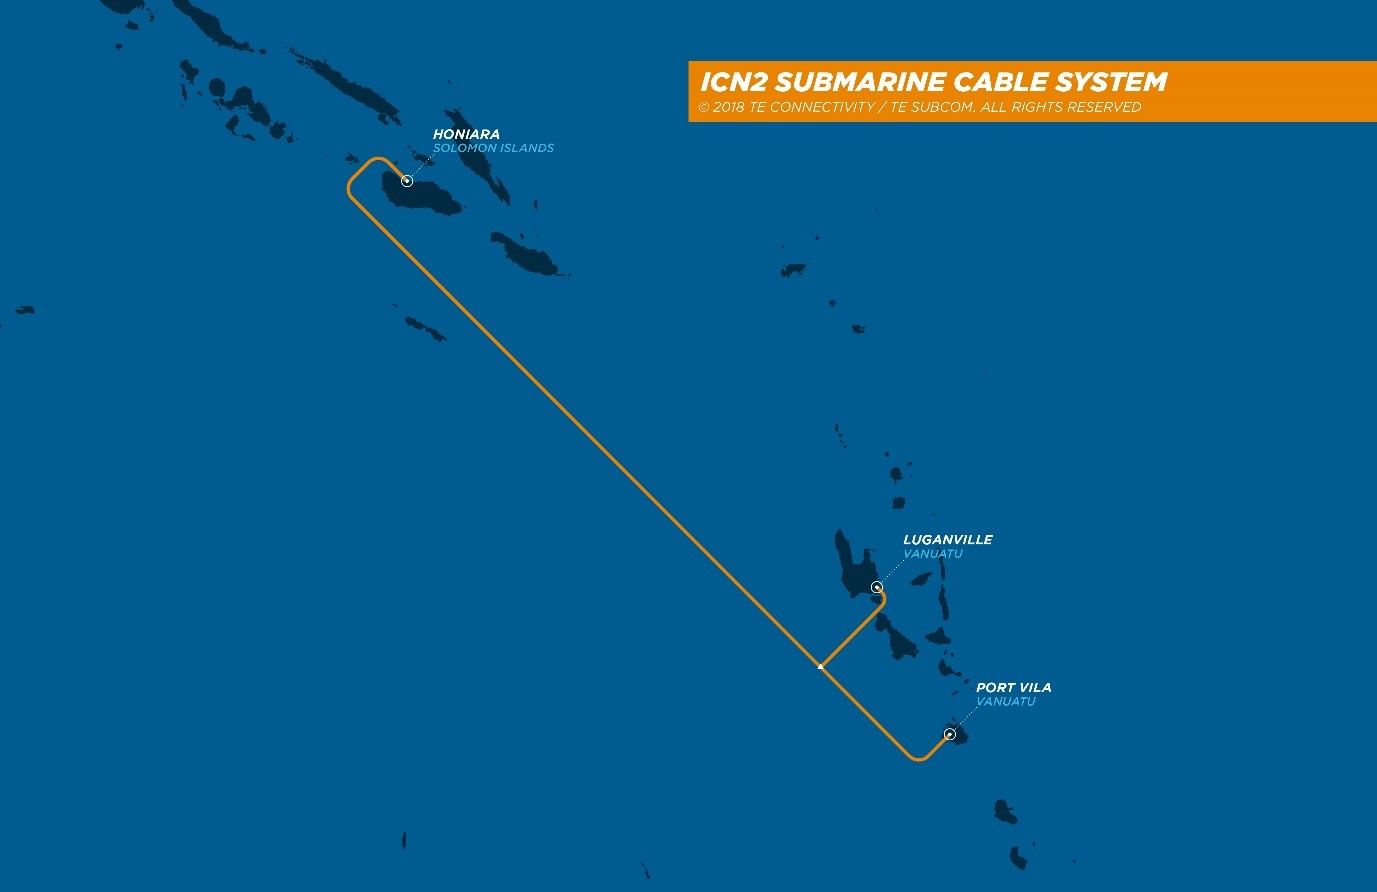 TE SubCom Announces ICN2 Contract in Force | Fiber Optic Cables